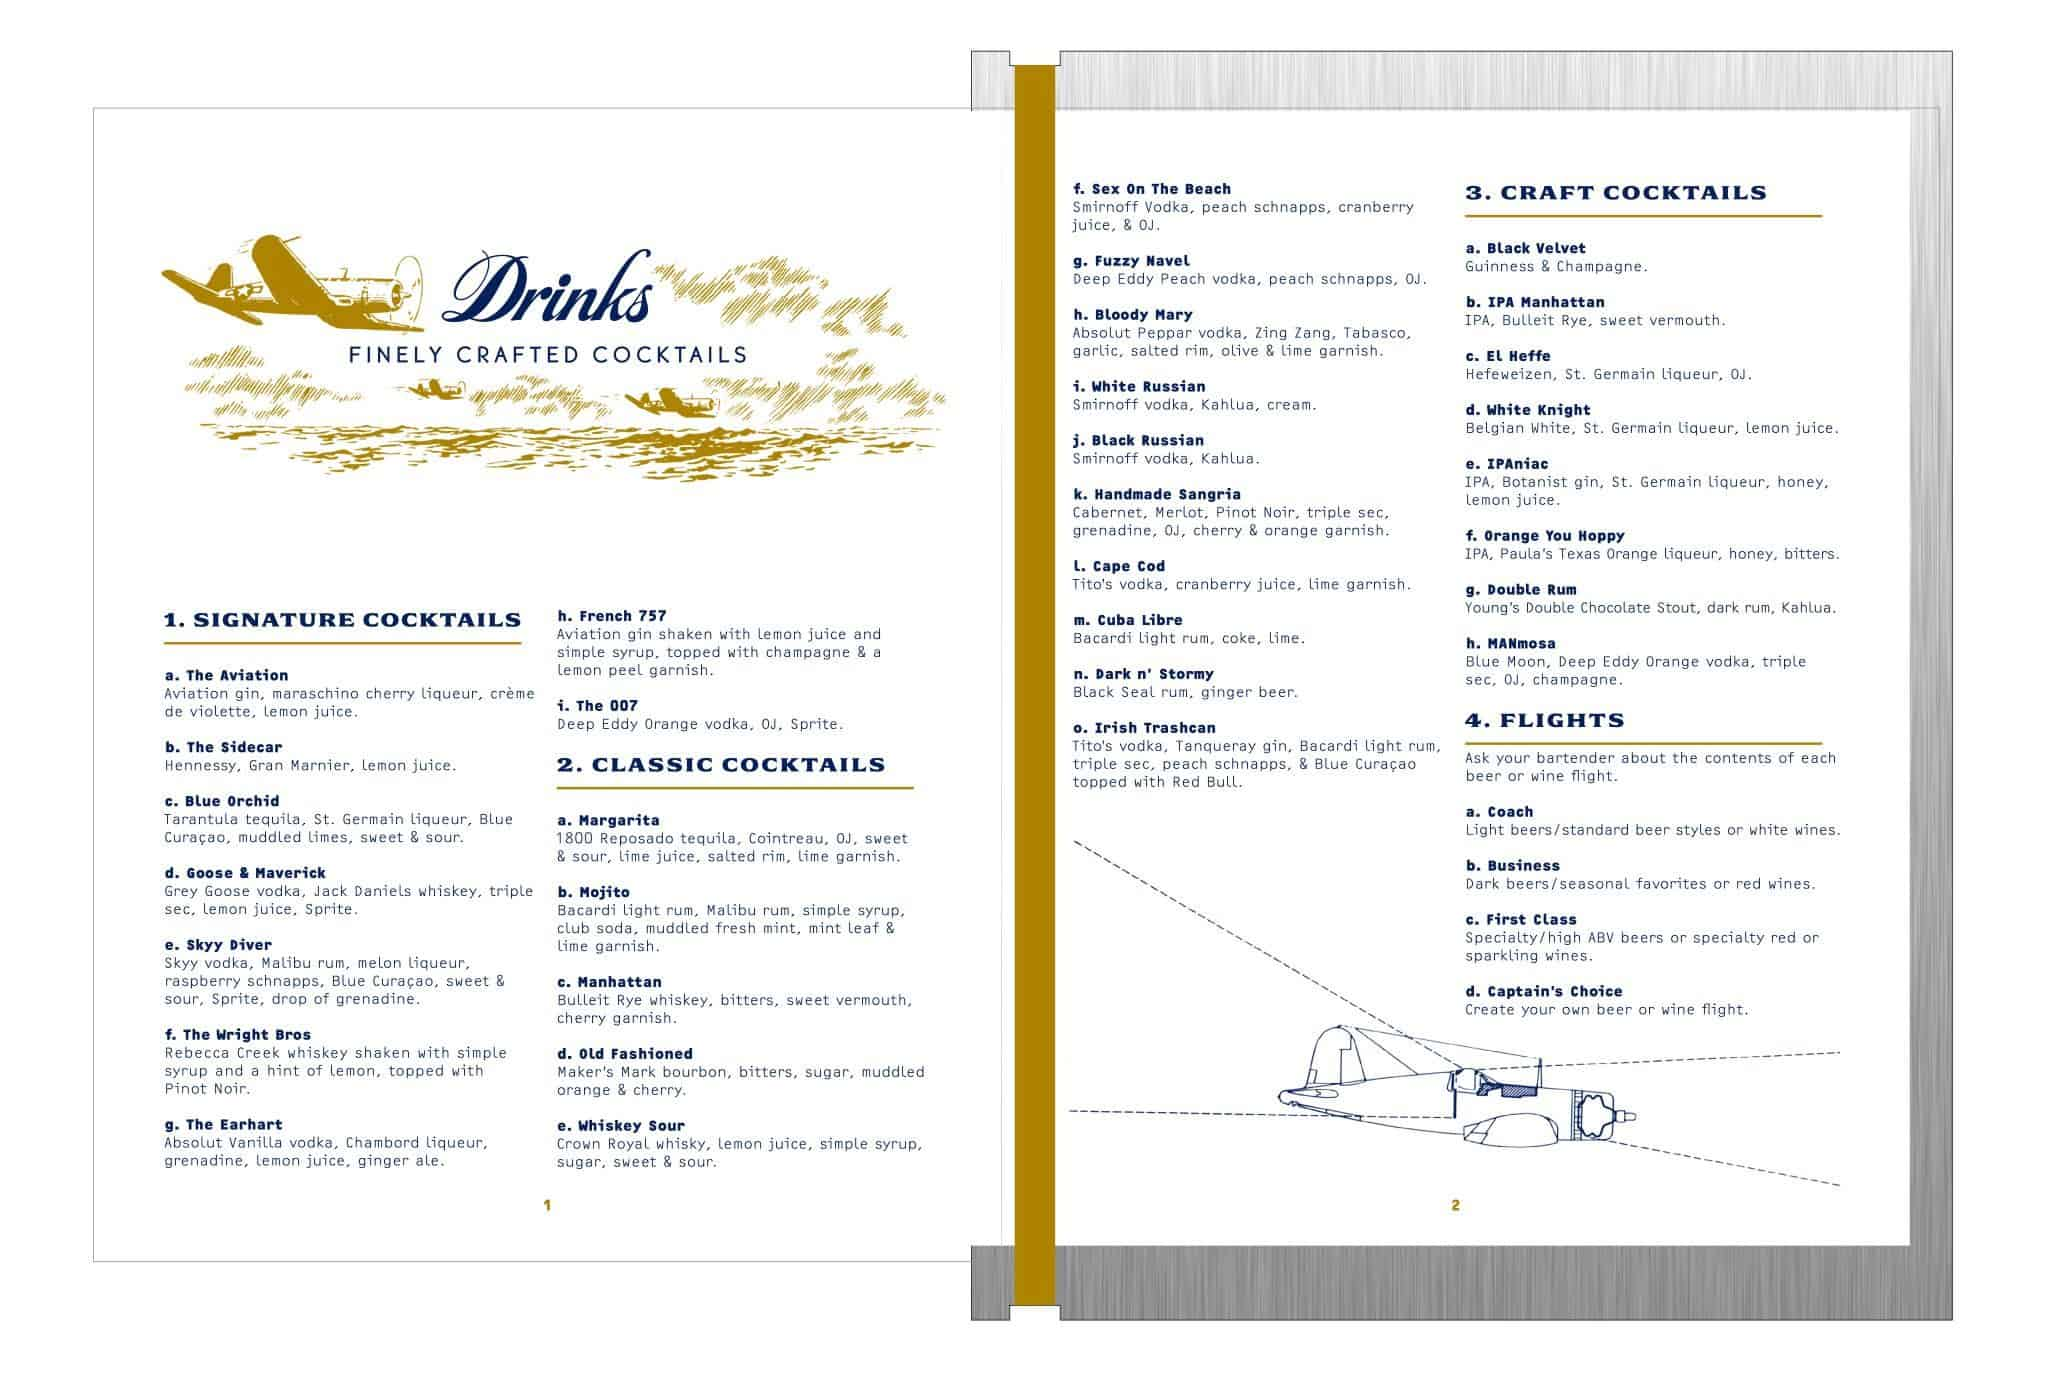 Drinks menu design for Aero Crafters Beer Garden, Victoria | Designed by Field of Study: A branding and graphic design consultancy | Houston TX | Jennifer Blanco & John Earles